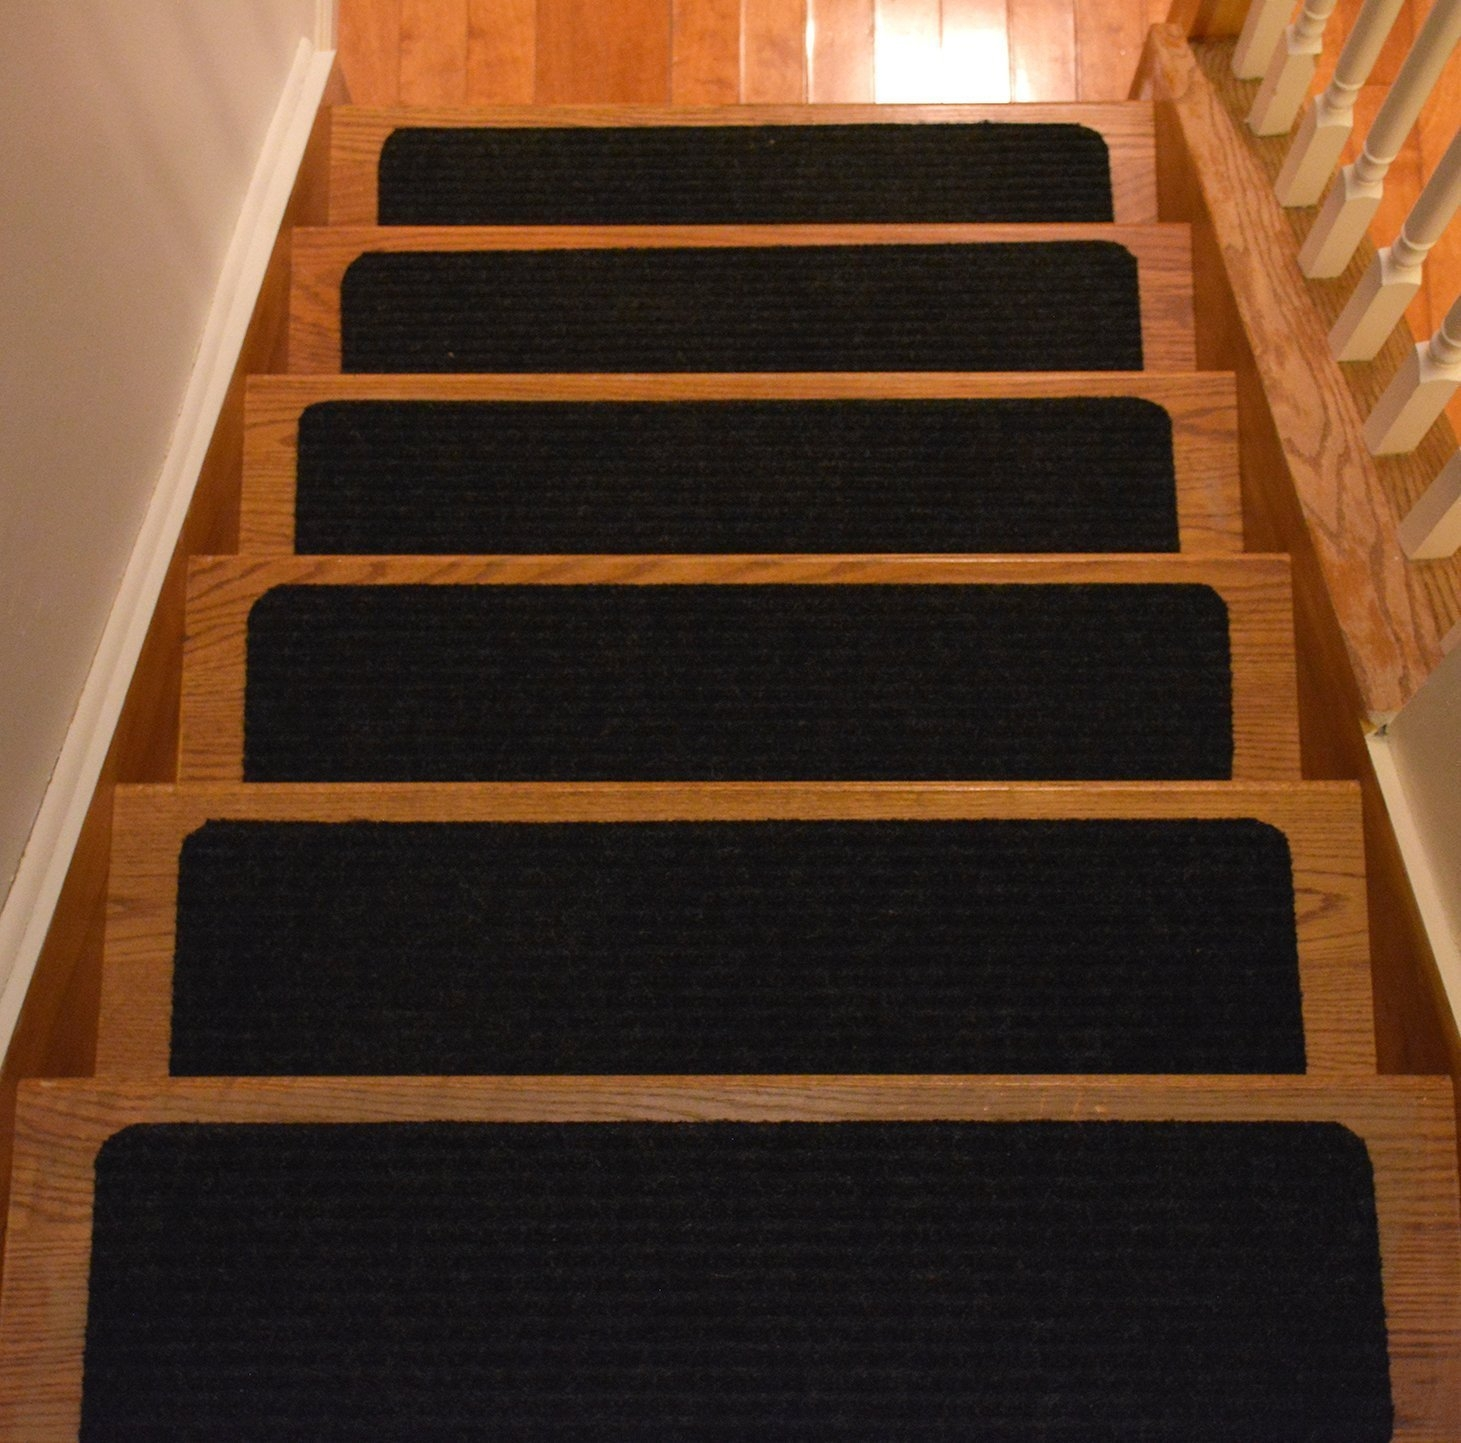 Flooring Stair Treads Carpet Stair Tread Rug Carpet Tread For Regarding Stair Tread Rug Holders (View 17 of 20)